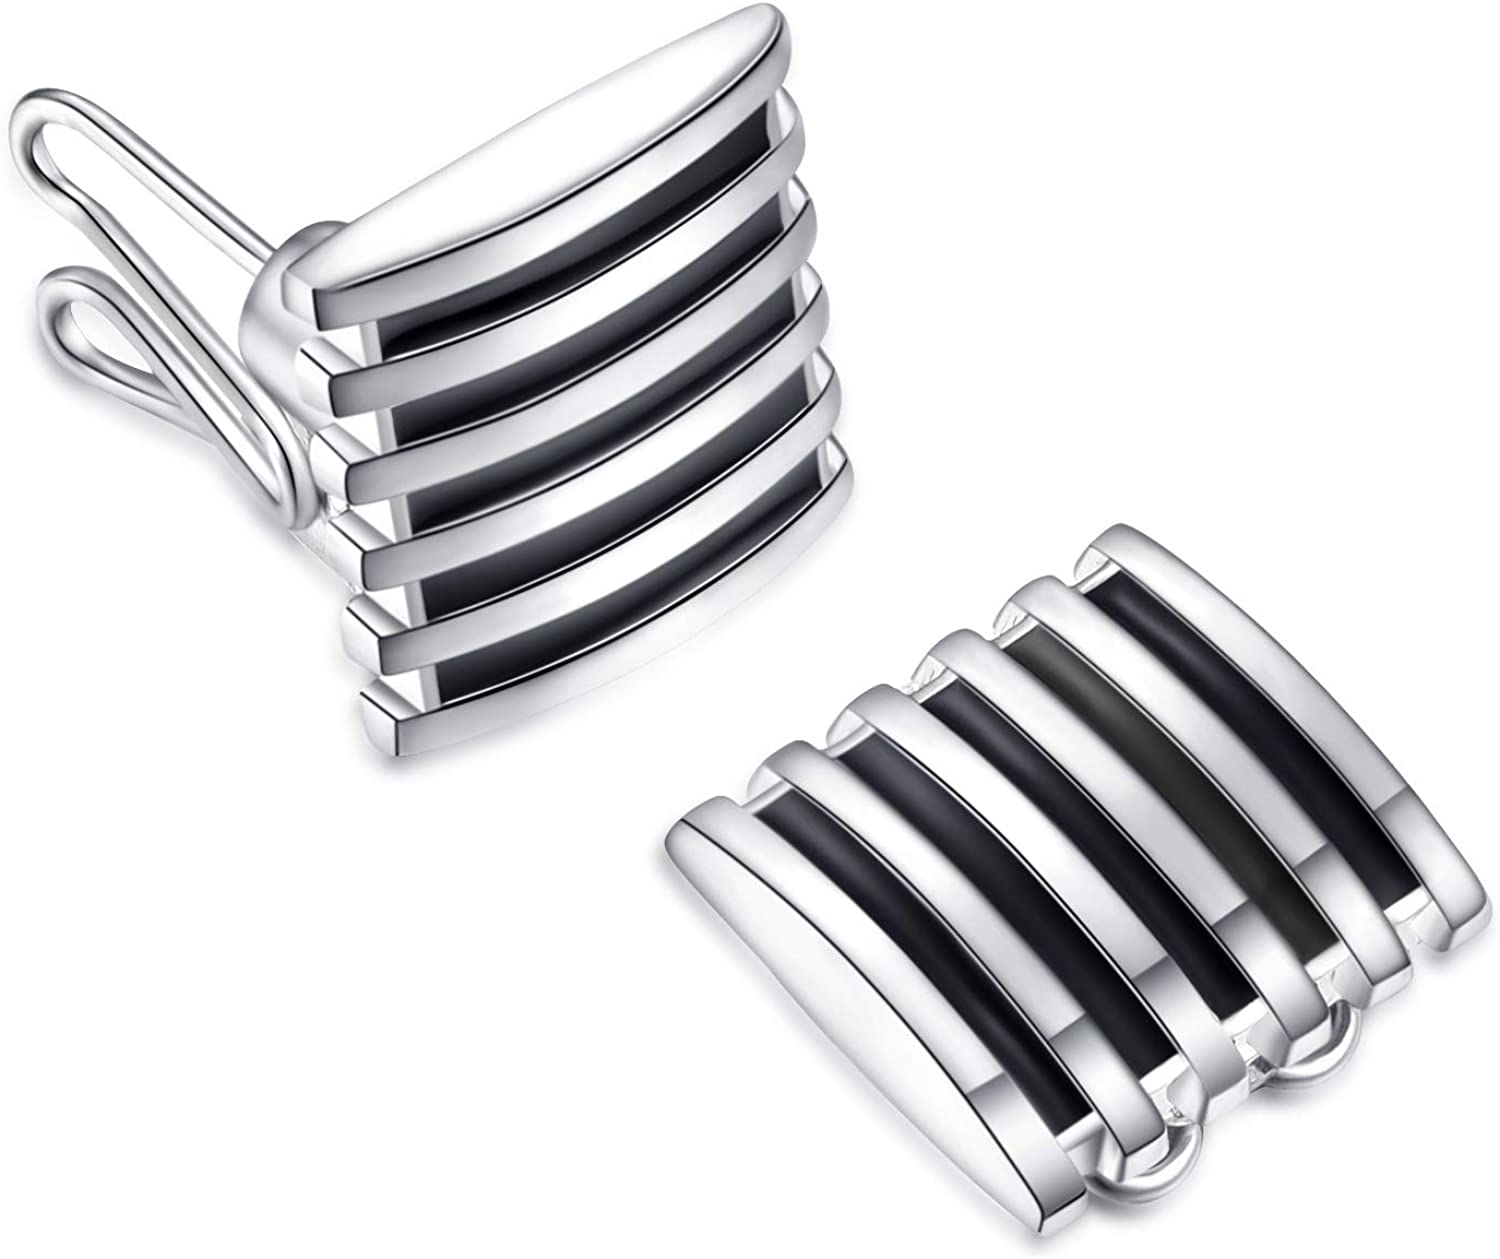 BUTTONCUFF Designer Men's Button Covers - Imitation Cuff Links for Tuxedo, Business or Formal Shirts